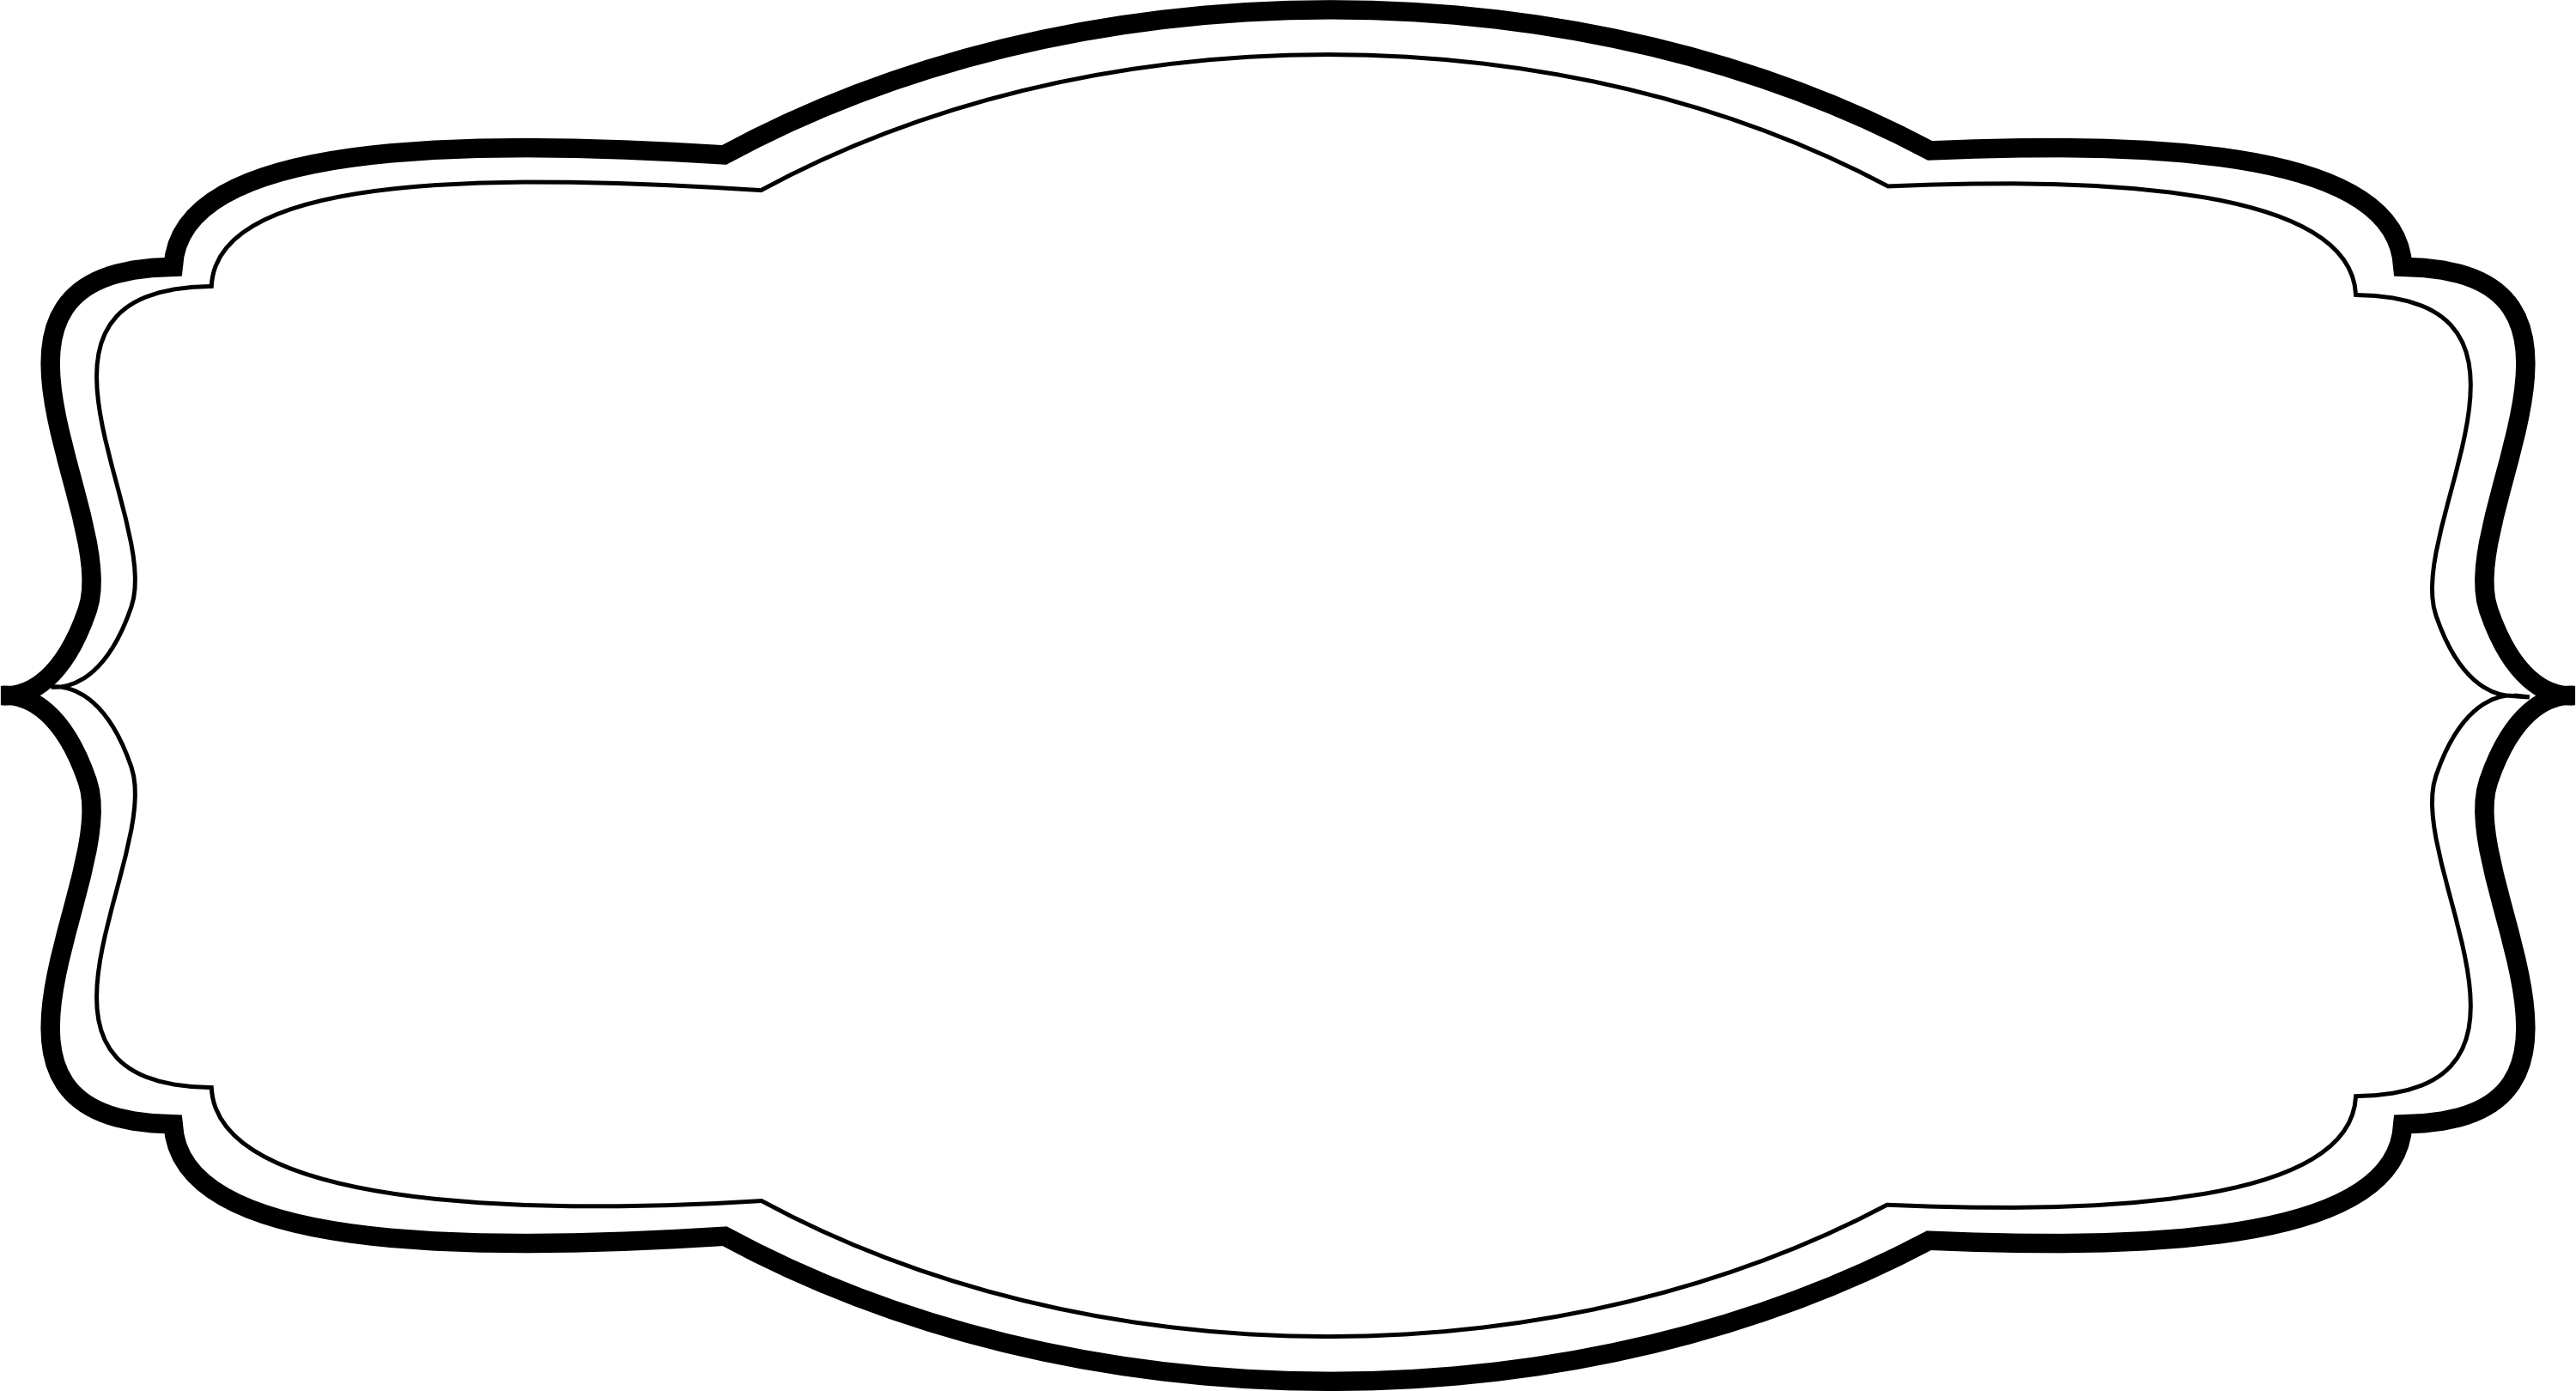 png black and white library Label clipart vintage. Blank templates the creative.